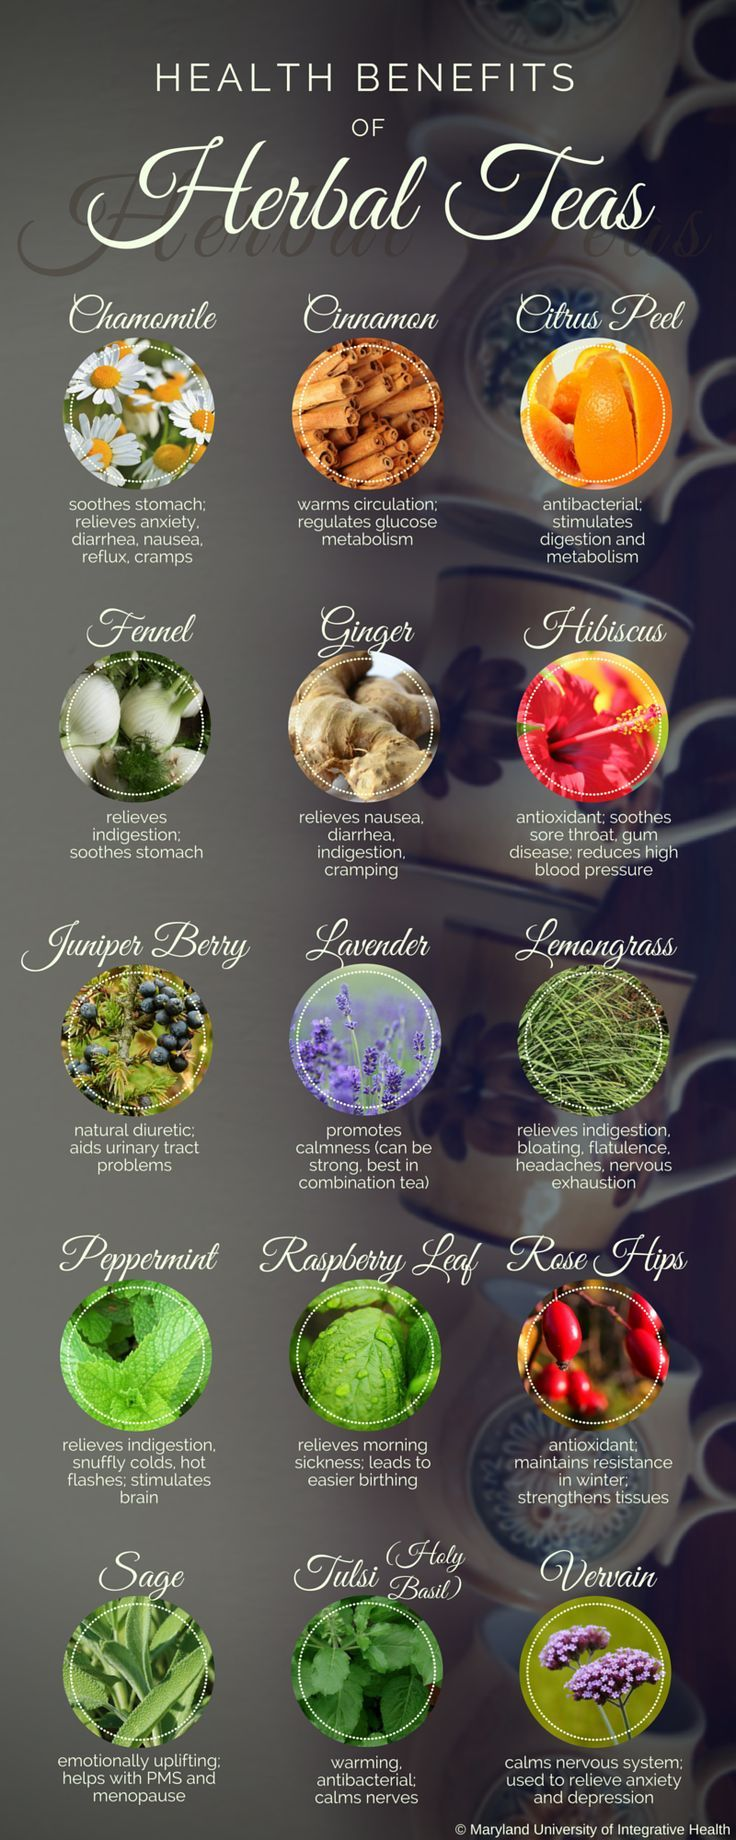 I've dedicated this week to herbal health, especially the health benefits of herbal teas - herbal remedies, tea, herbs